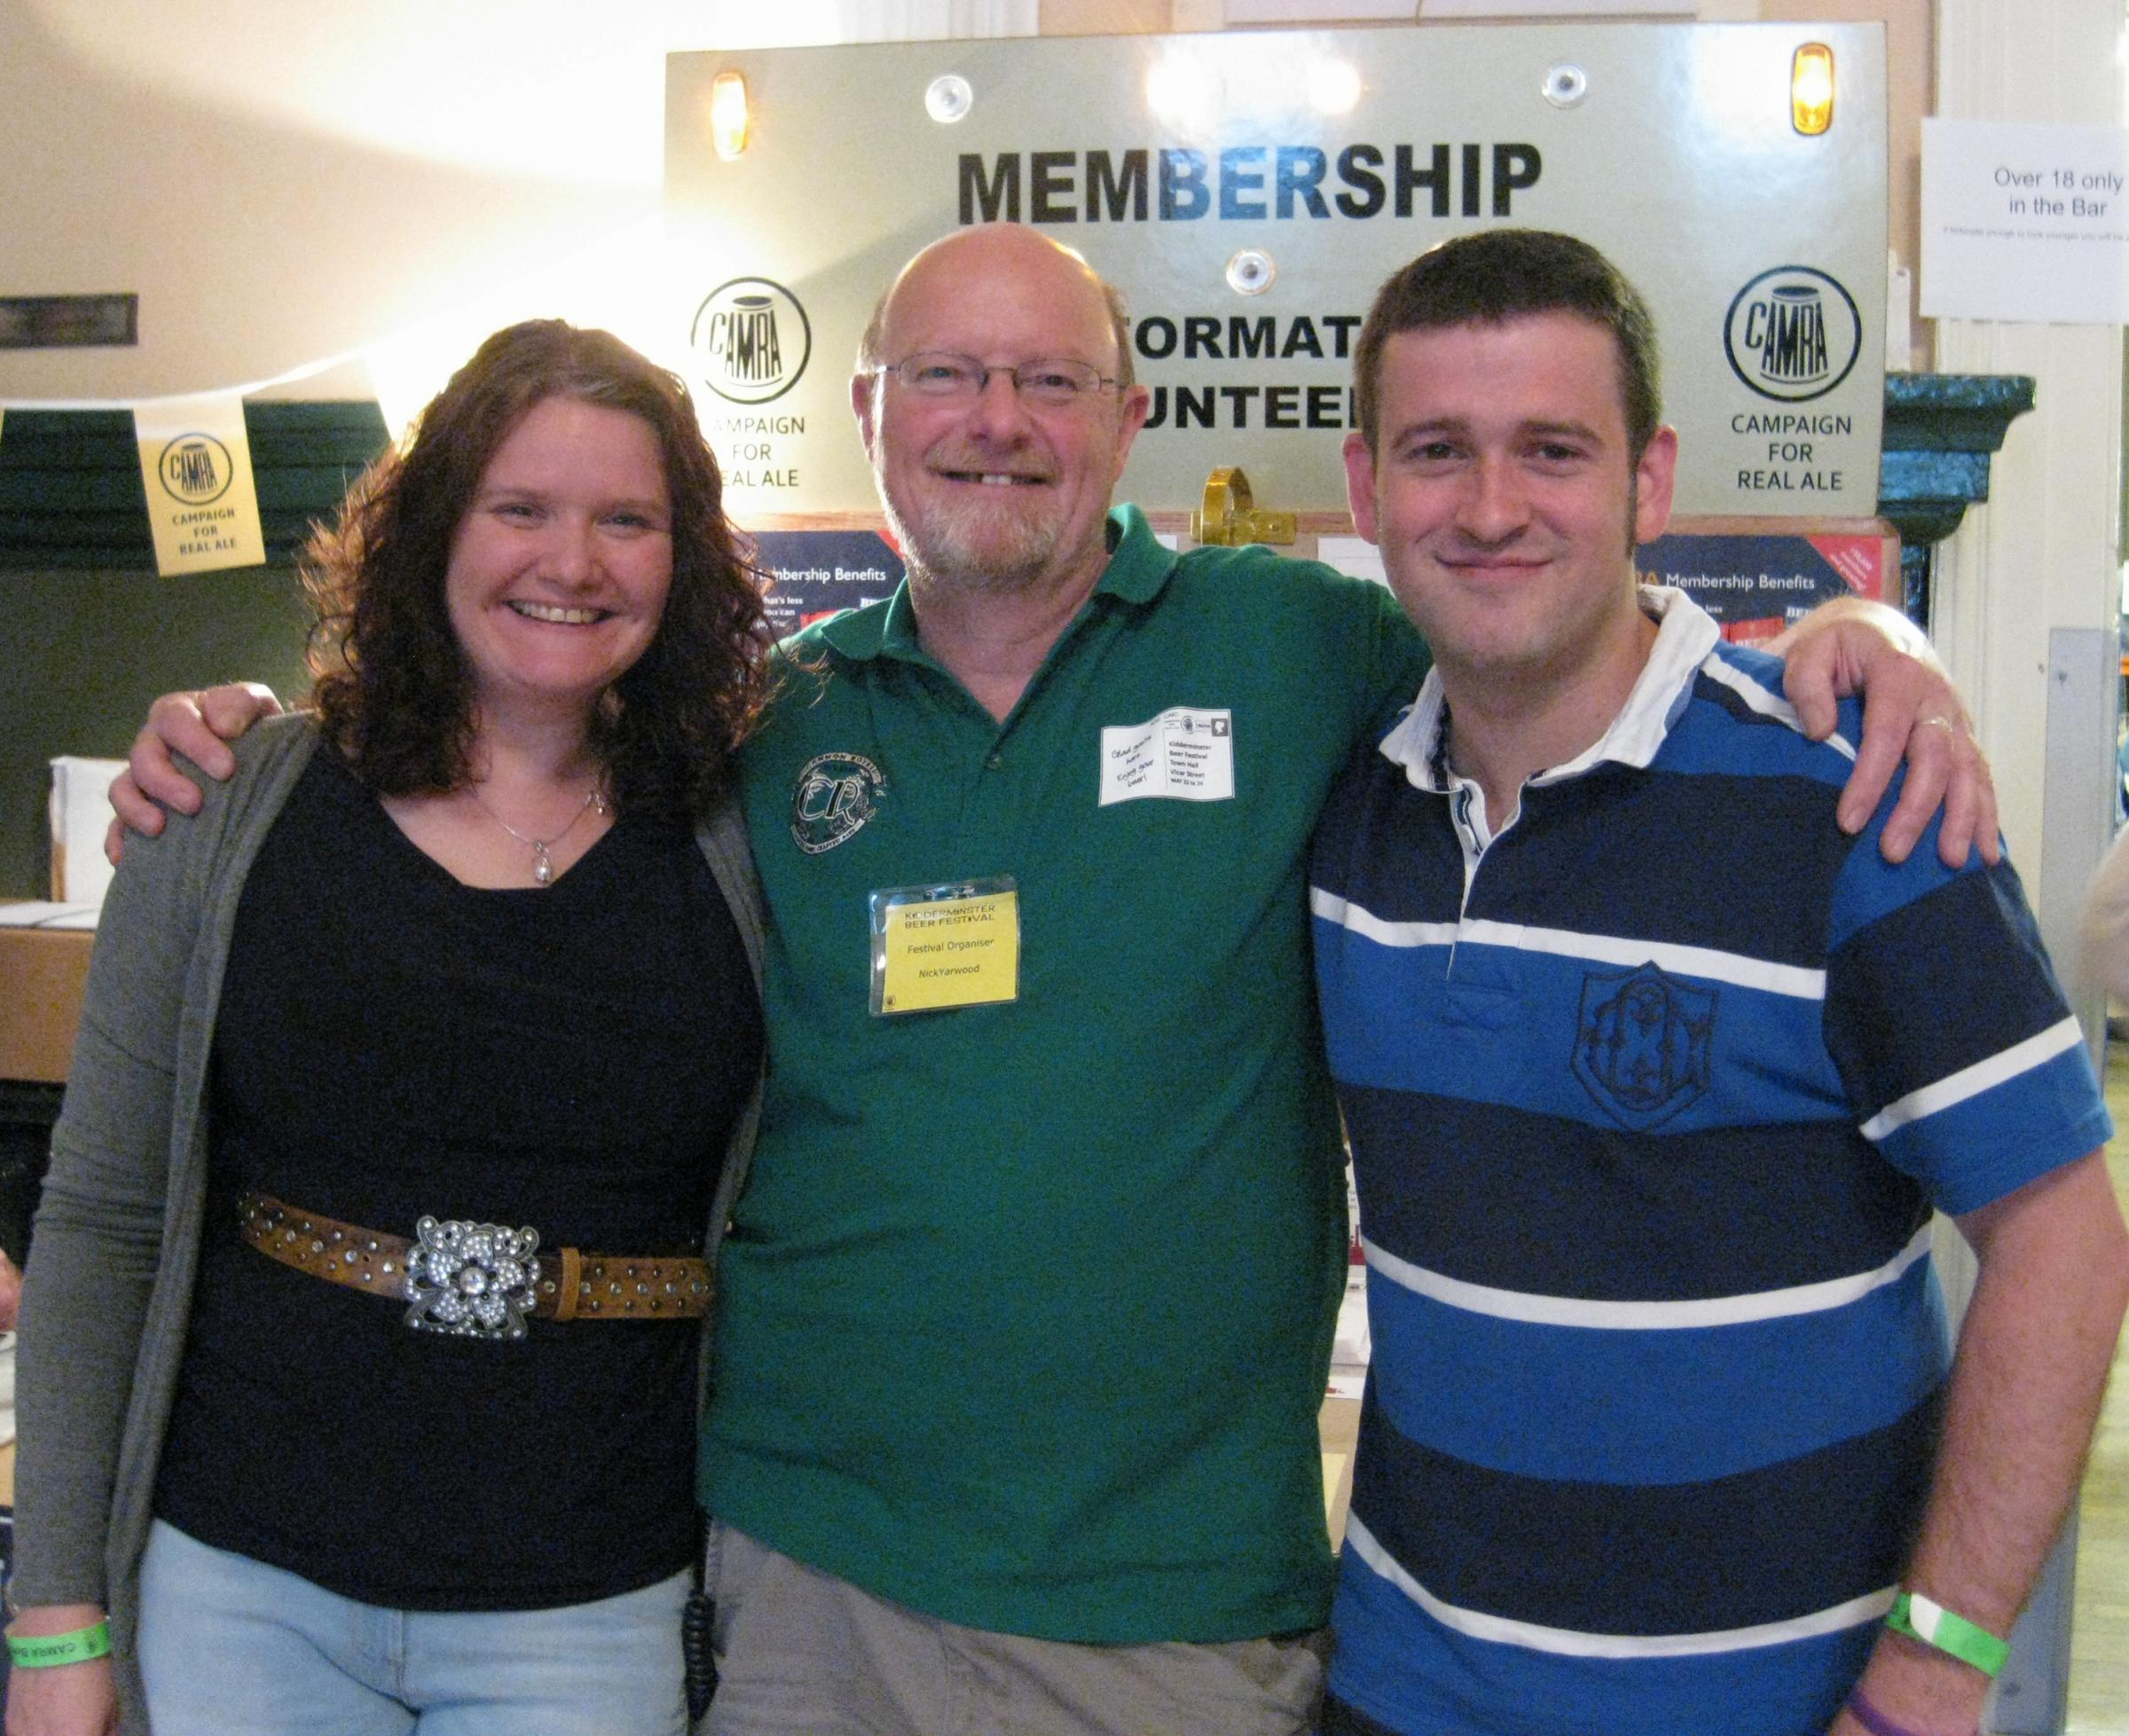 NEW MEMBERS: Wyre Forest CAMRA chairman Nick Yarwood, centre, with members 300 and 301 Nicole Andrews and John Hudson.